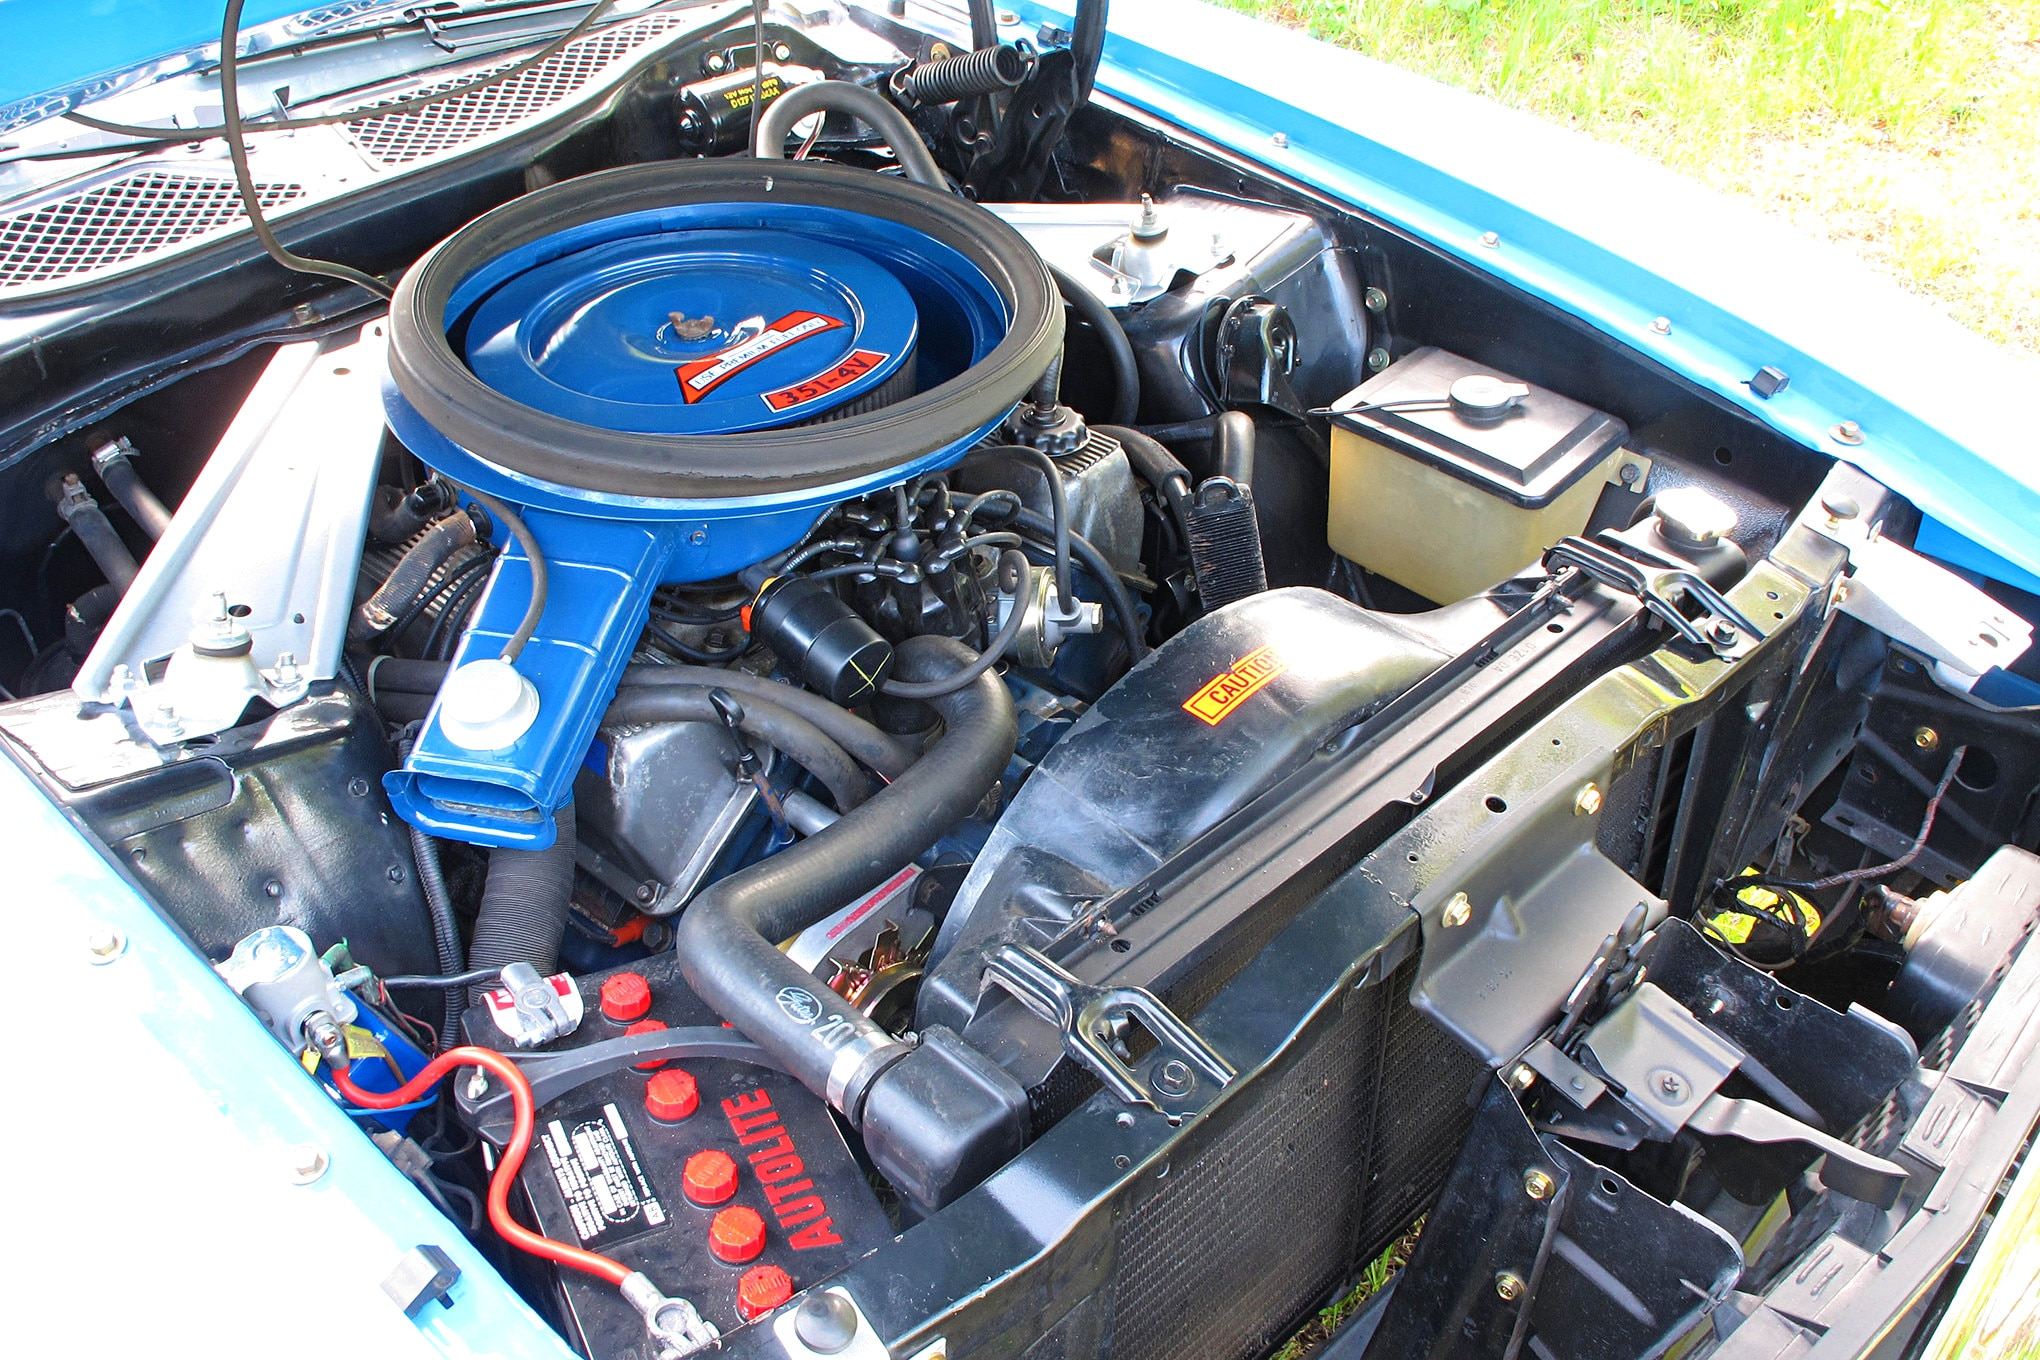 53 1971 Ford Mustang Boss 351 Blue Engine With Air Filter